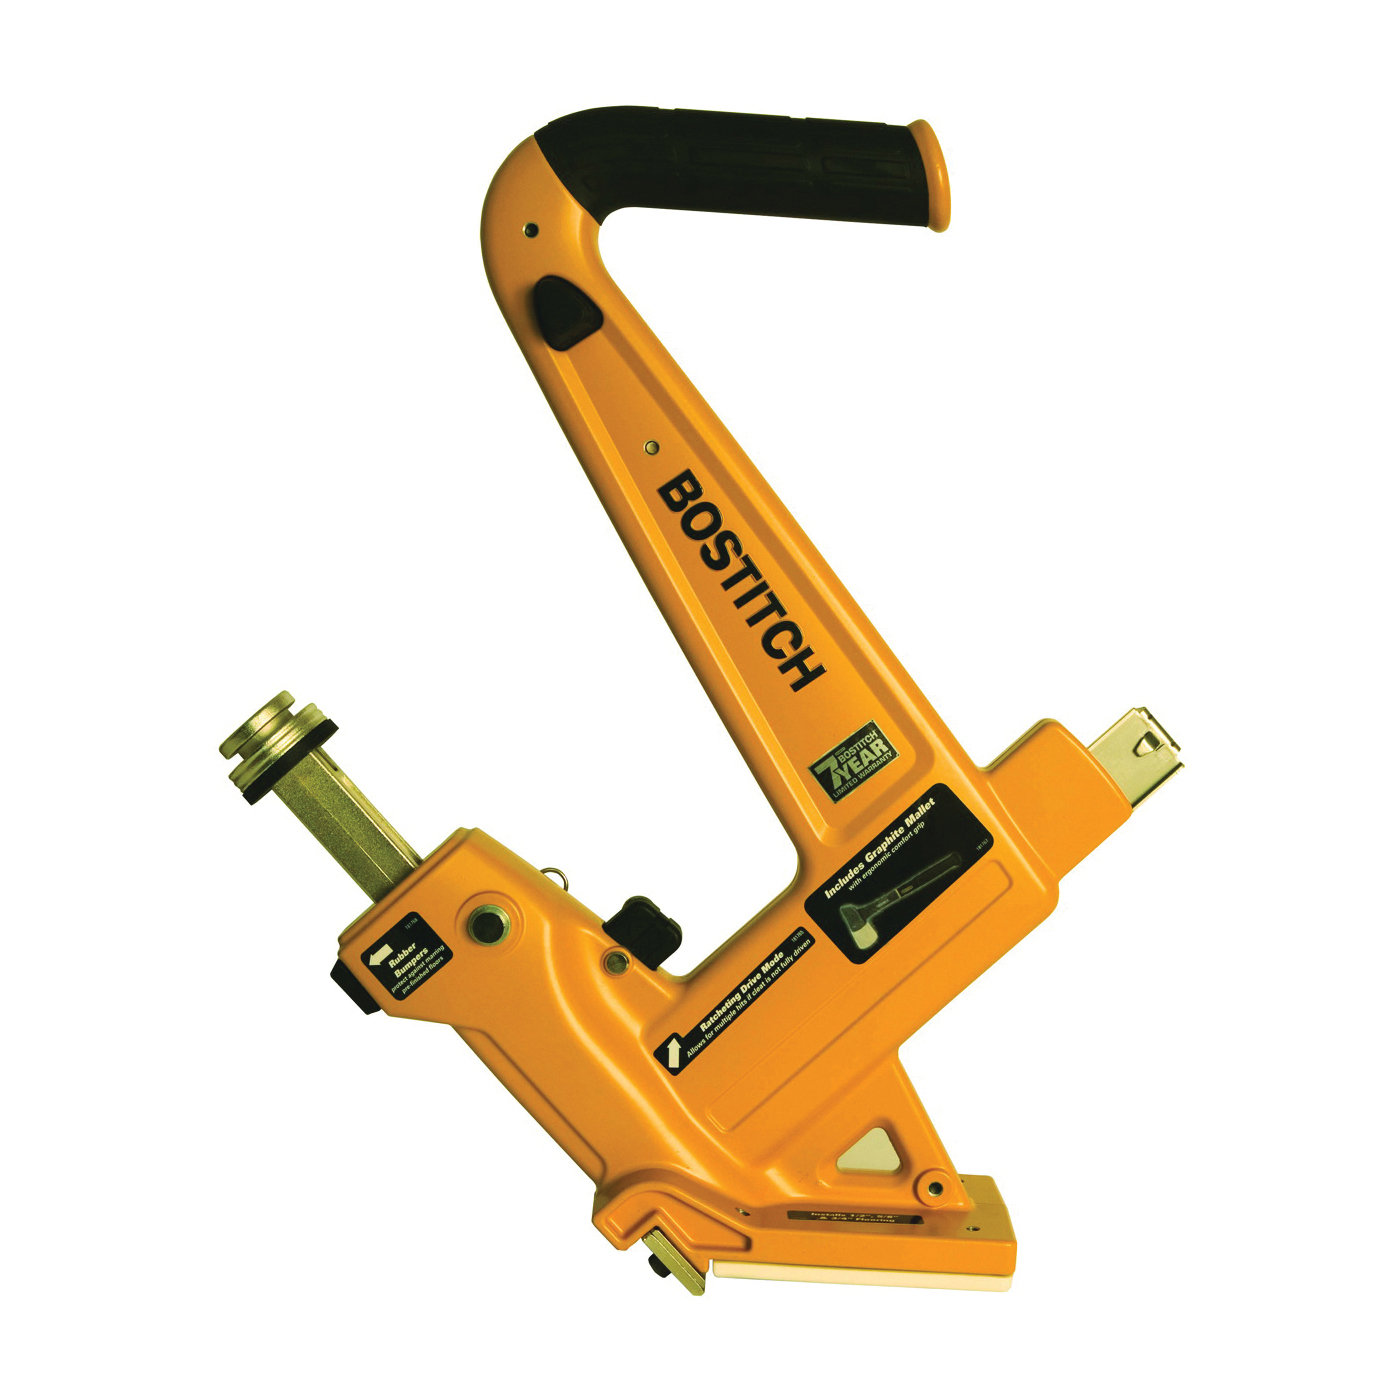 Picture of Bostitch MFN-201 Floor Cleat Nailer, 120 Magazine, 1-1/2 to 2 in L Fastener